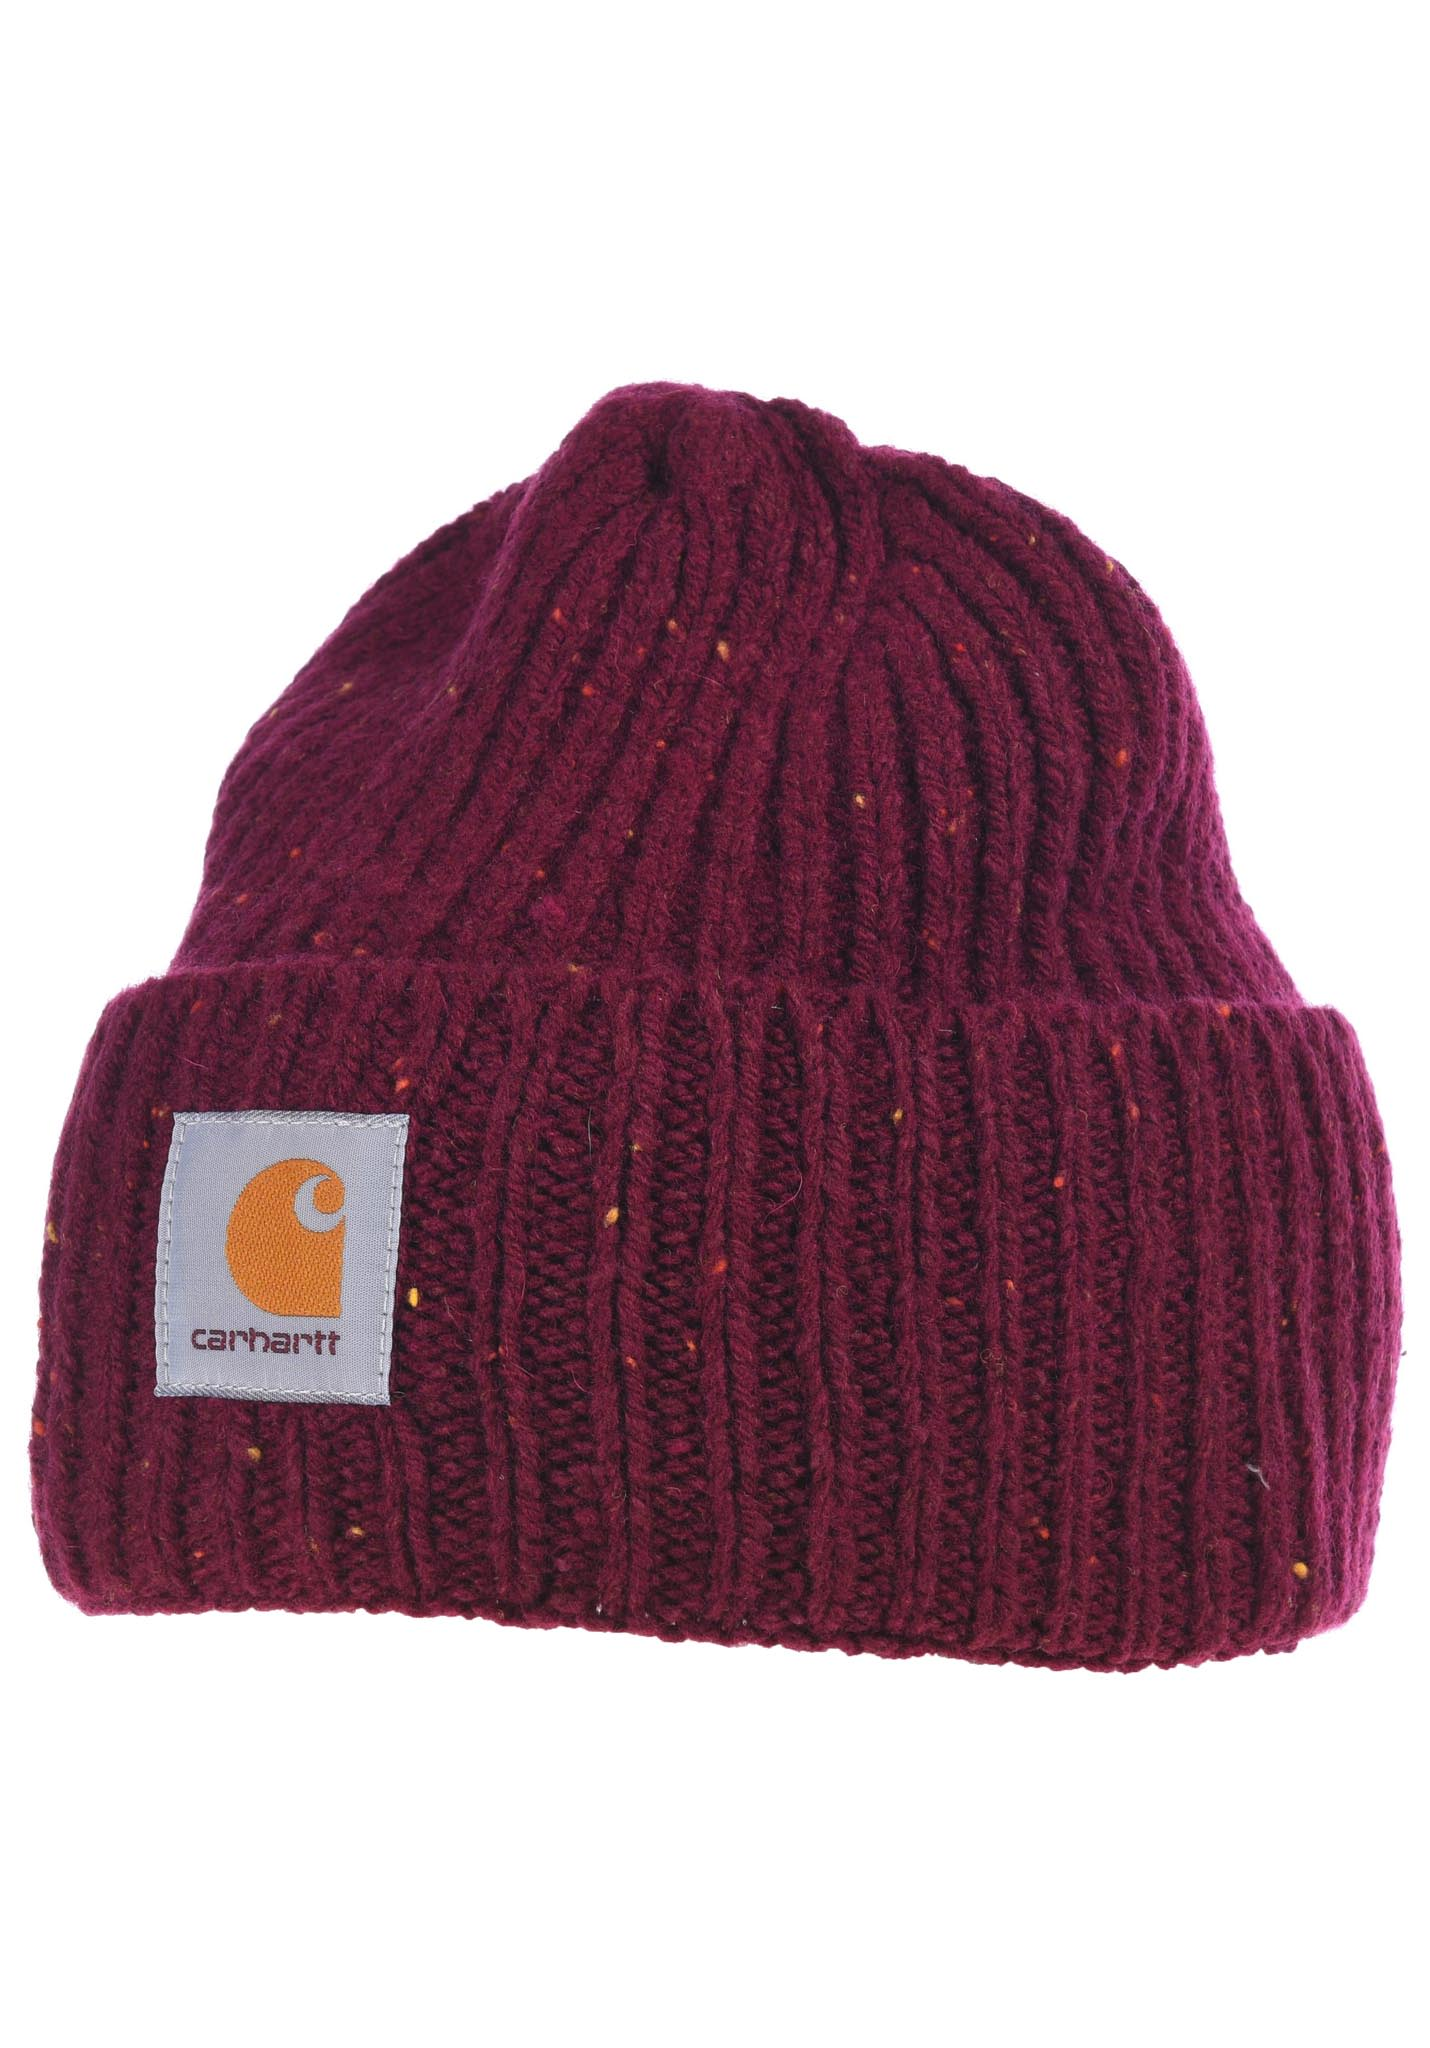 40aa747cc4015 carhartt WIP Anglistic - Beanie - Red - Planet Sports